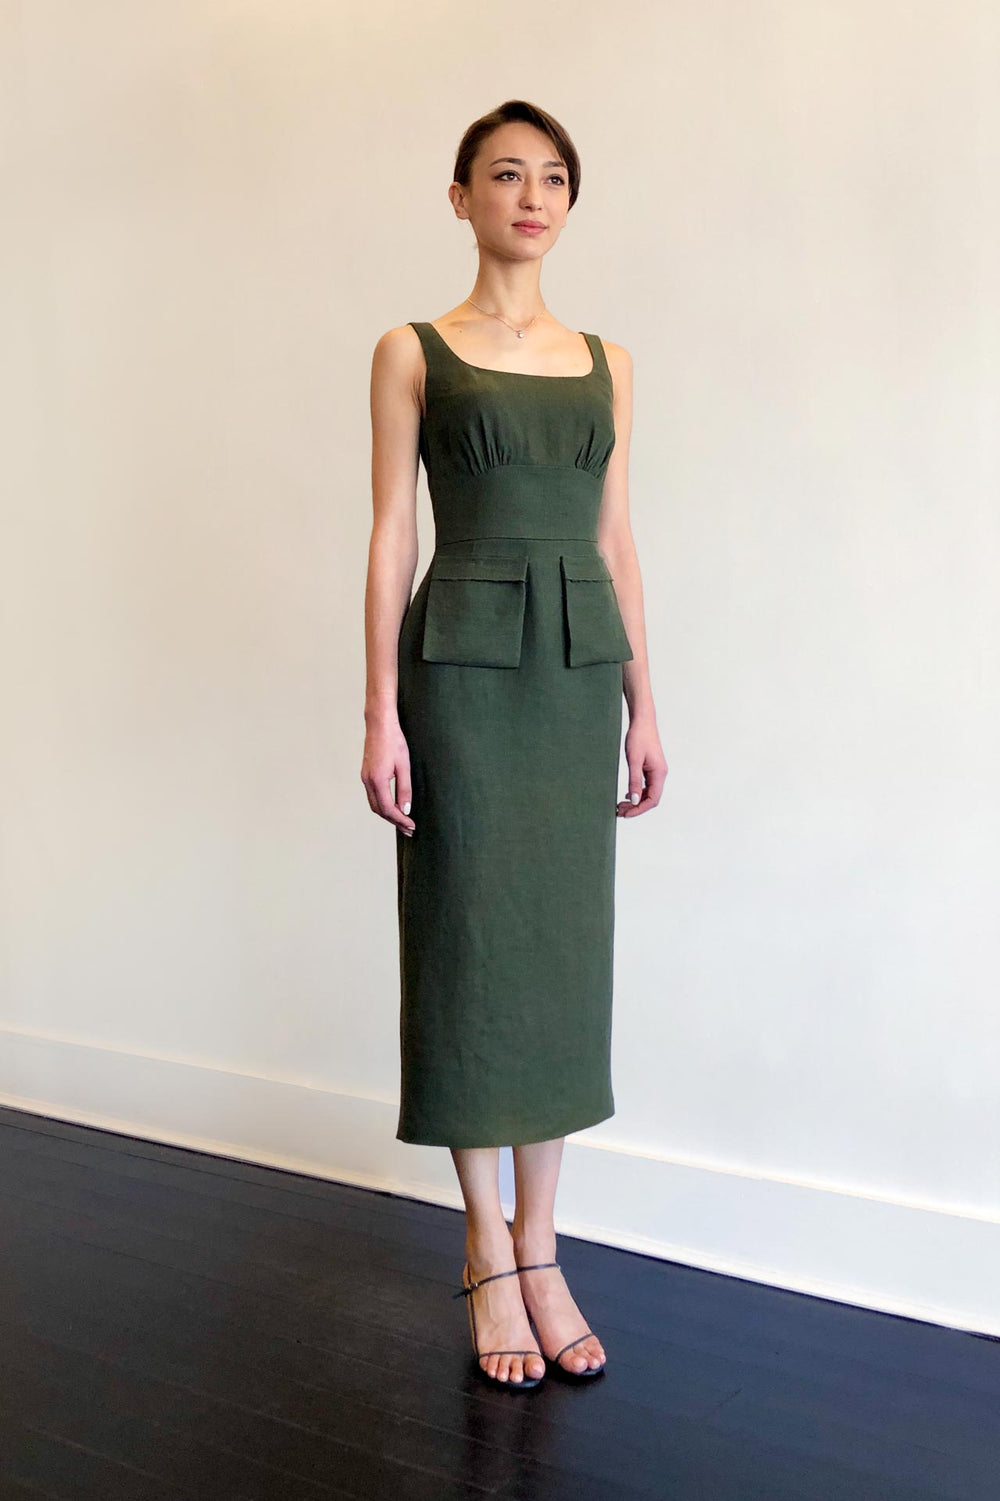 Fashion Designer CARL KAPP collection | Boulder Linen dress Green | Sydney Australia